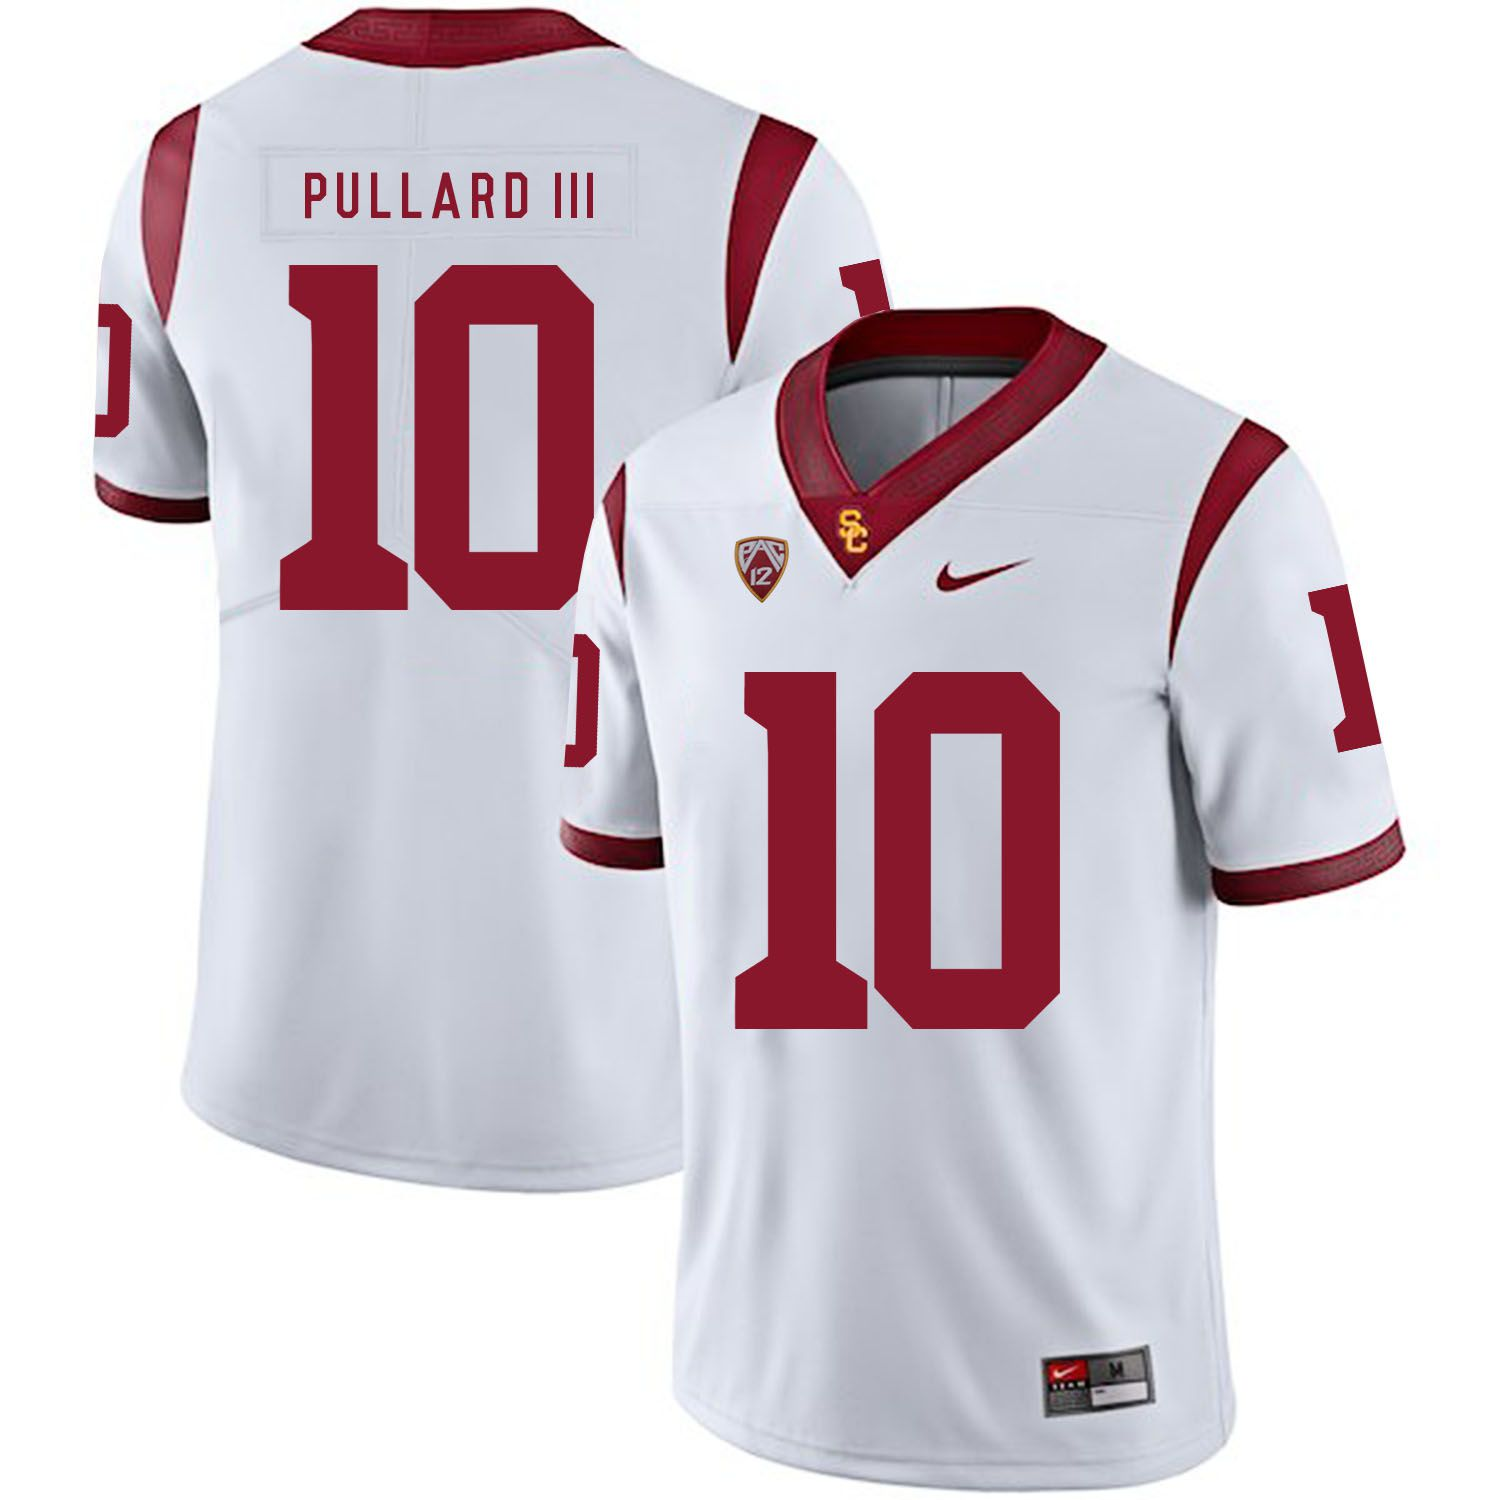 Men USC Trojans 10 Pullard iii White Customized NCAA Jerseys